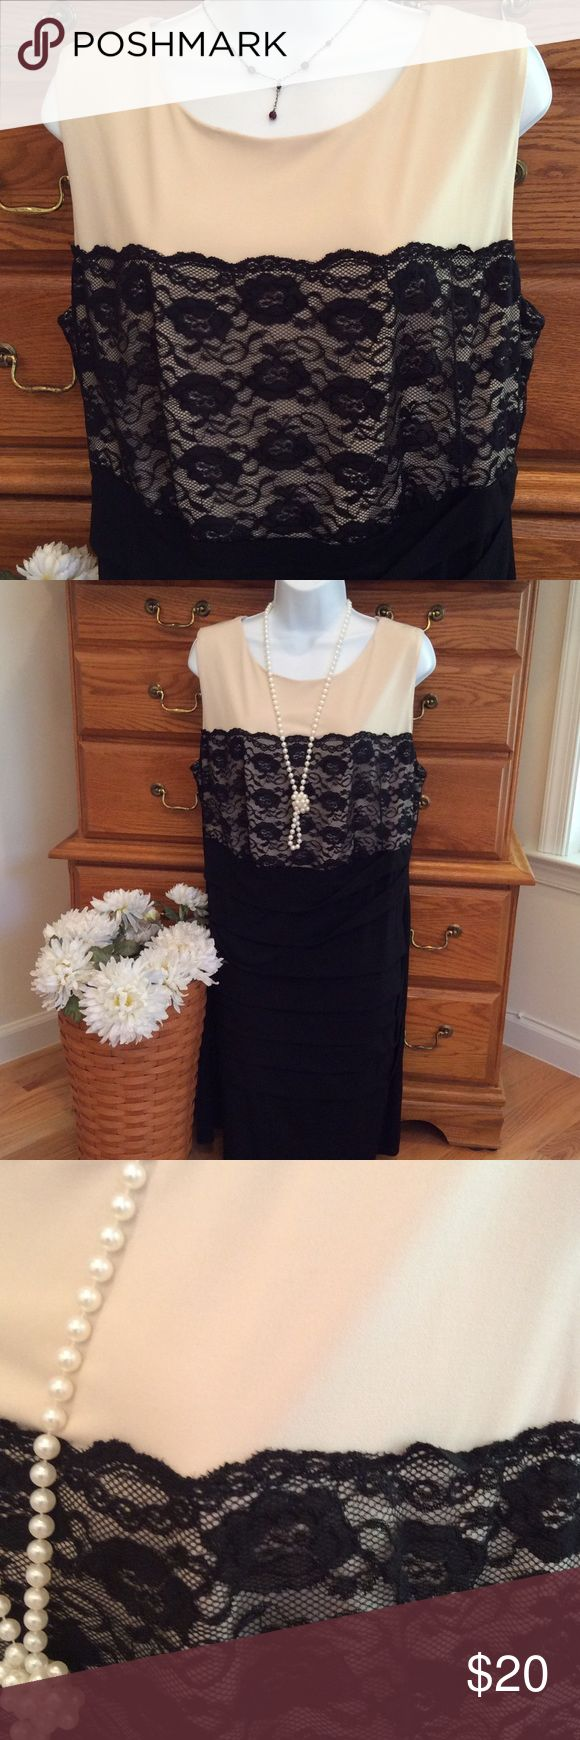 """Dress Barn Black Lace Dress Polyester and spandex.  EUC.  Colors are a black and a creamy beige or nude.  Approximately 39"""" in length and when laid flat and measured from armpit to armpit it is 21"""" across.  Has some stretch but is a form fitting dress. There is a solid black ruffle going down only the front of the dress.  Feels like a liquid knit. Dress Barn Dresses Midi"""